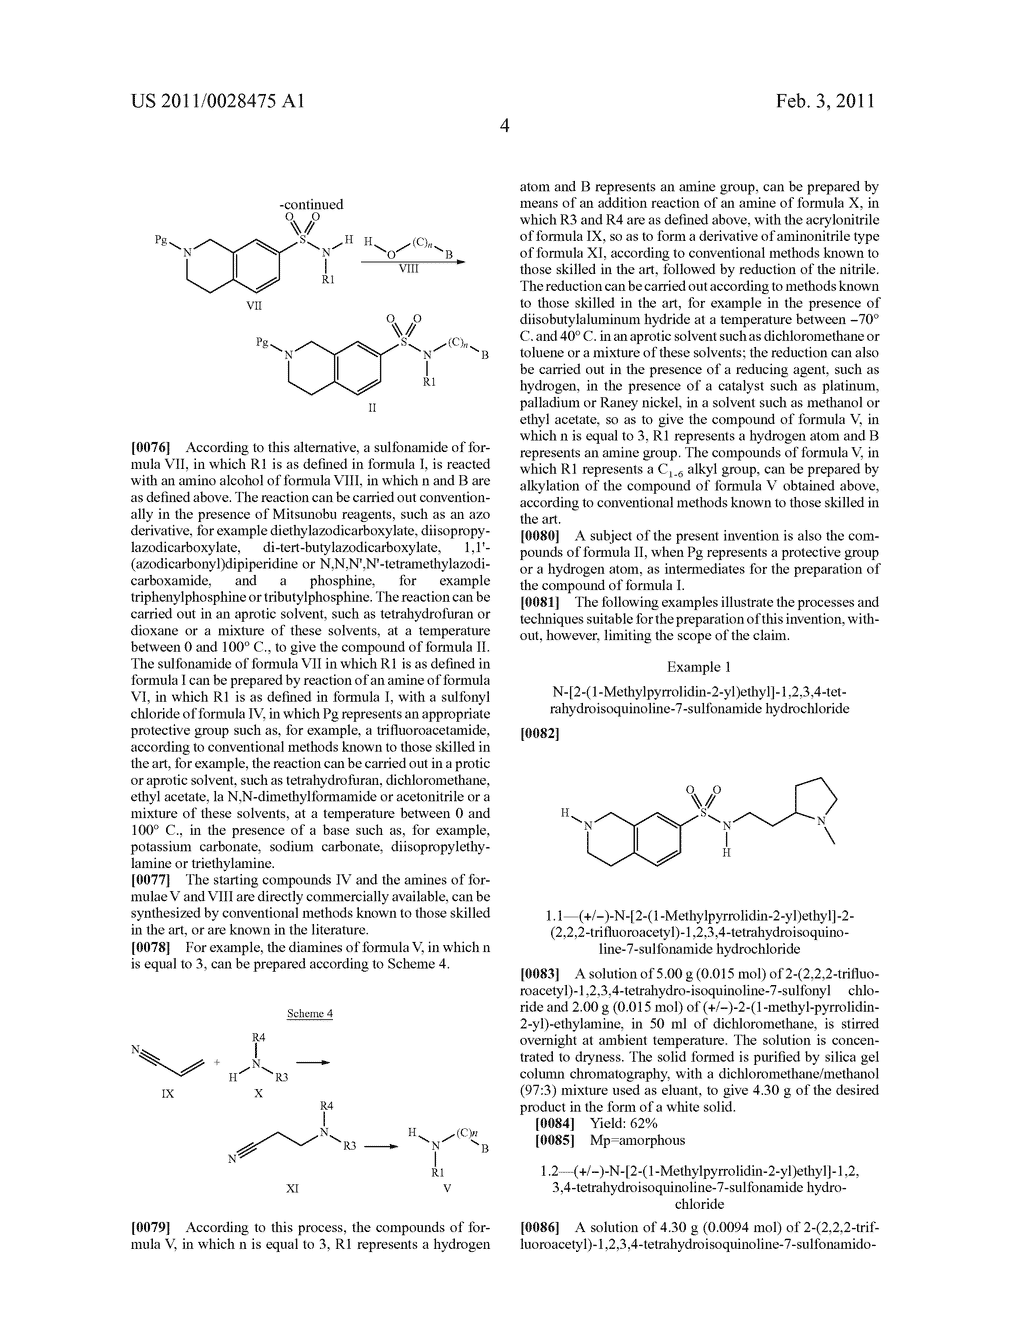 TETRAHYDROISOQUINOLINE SULFONAMIDE DERIVATIVES, THE PREPARATION THEREOF, AND THE USE OF THE SAME IN THERAPEUTICS - diagram, schematic, and image 05